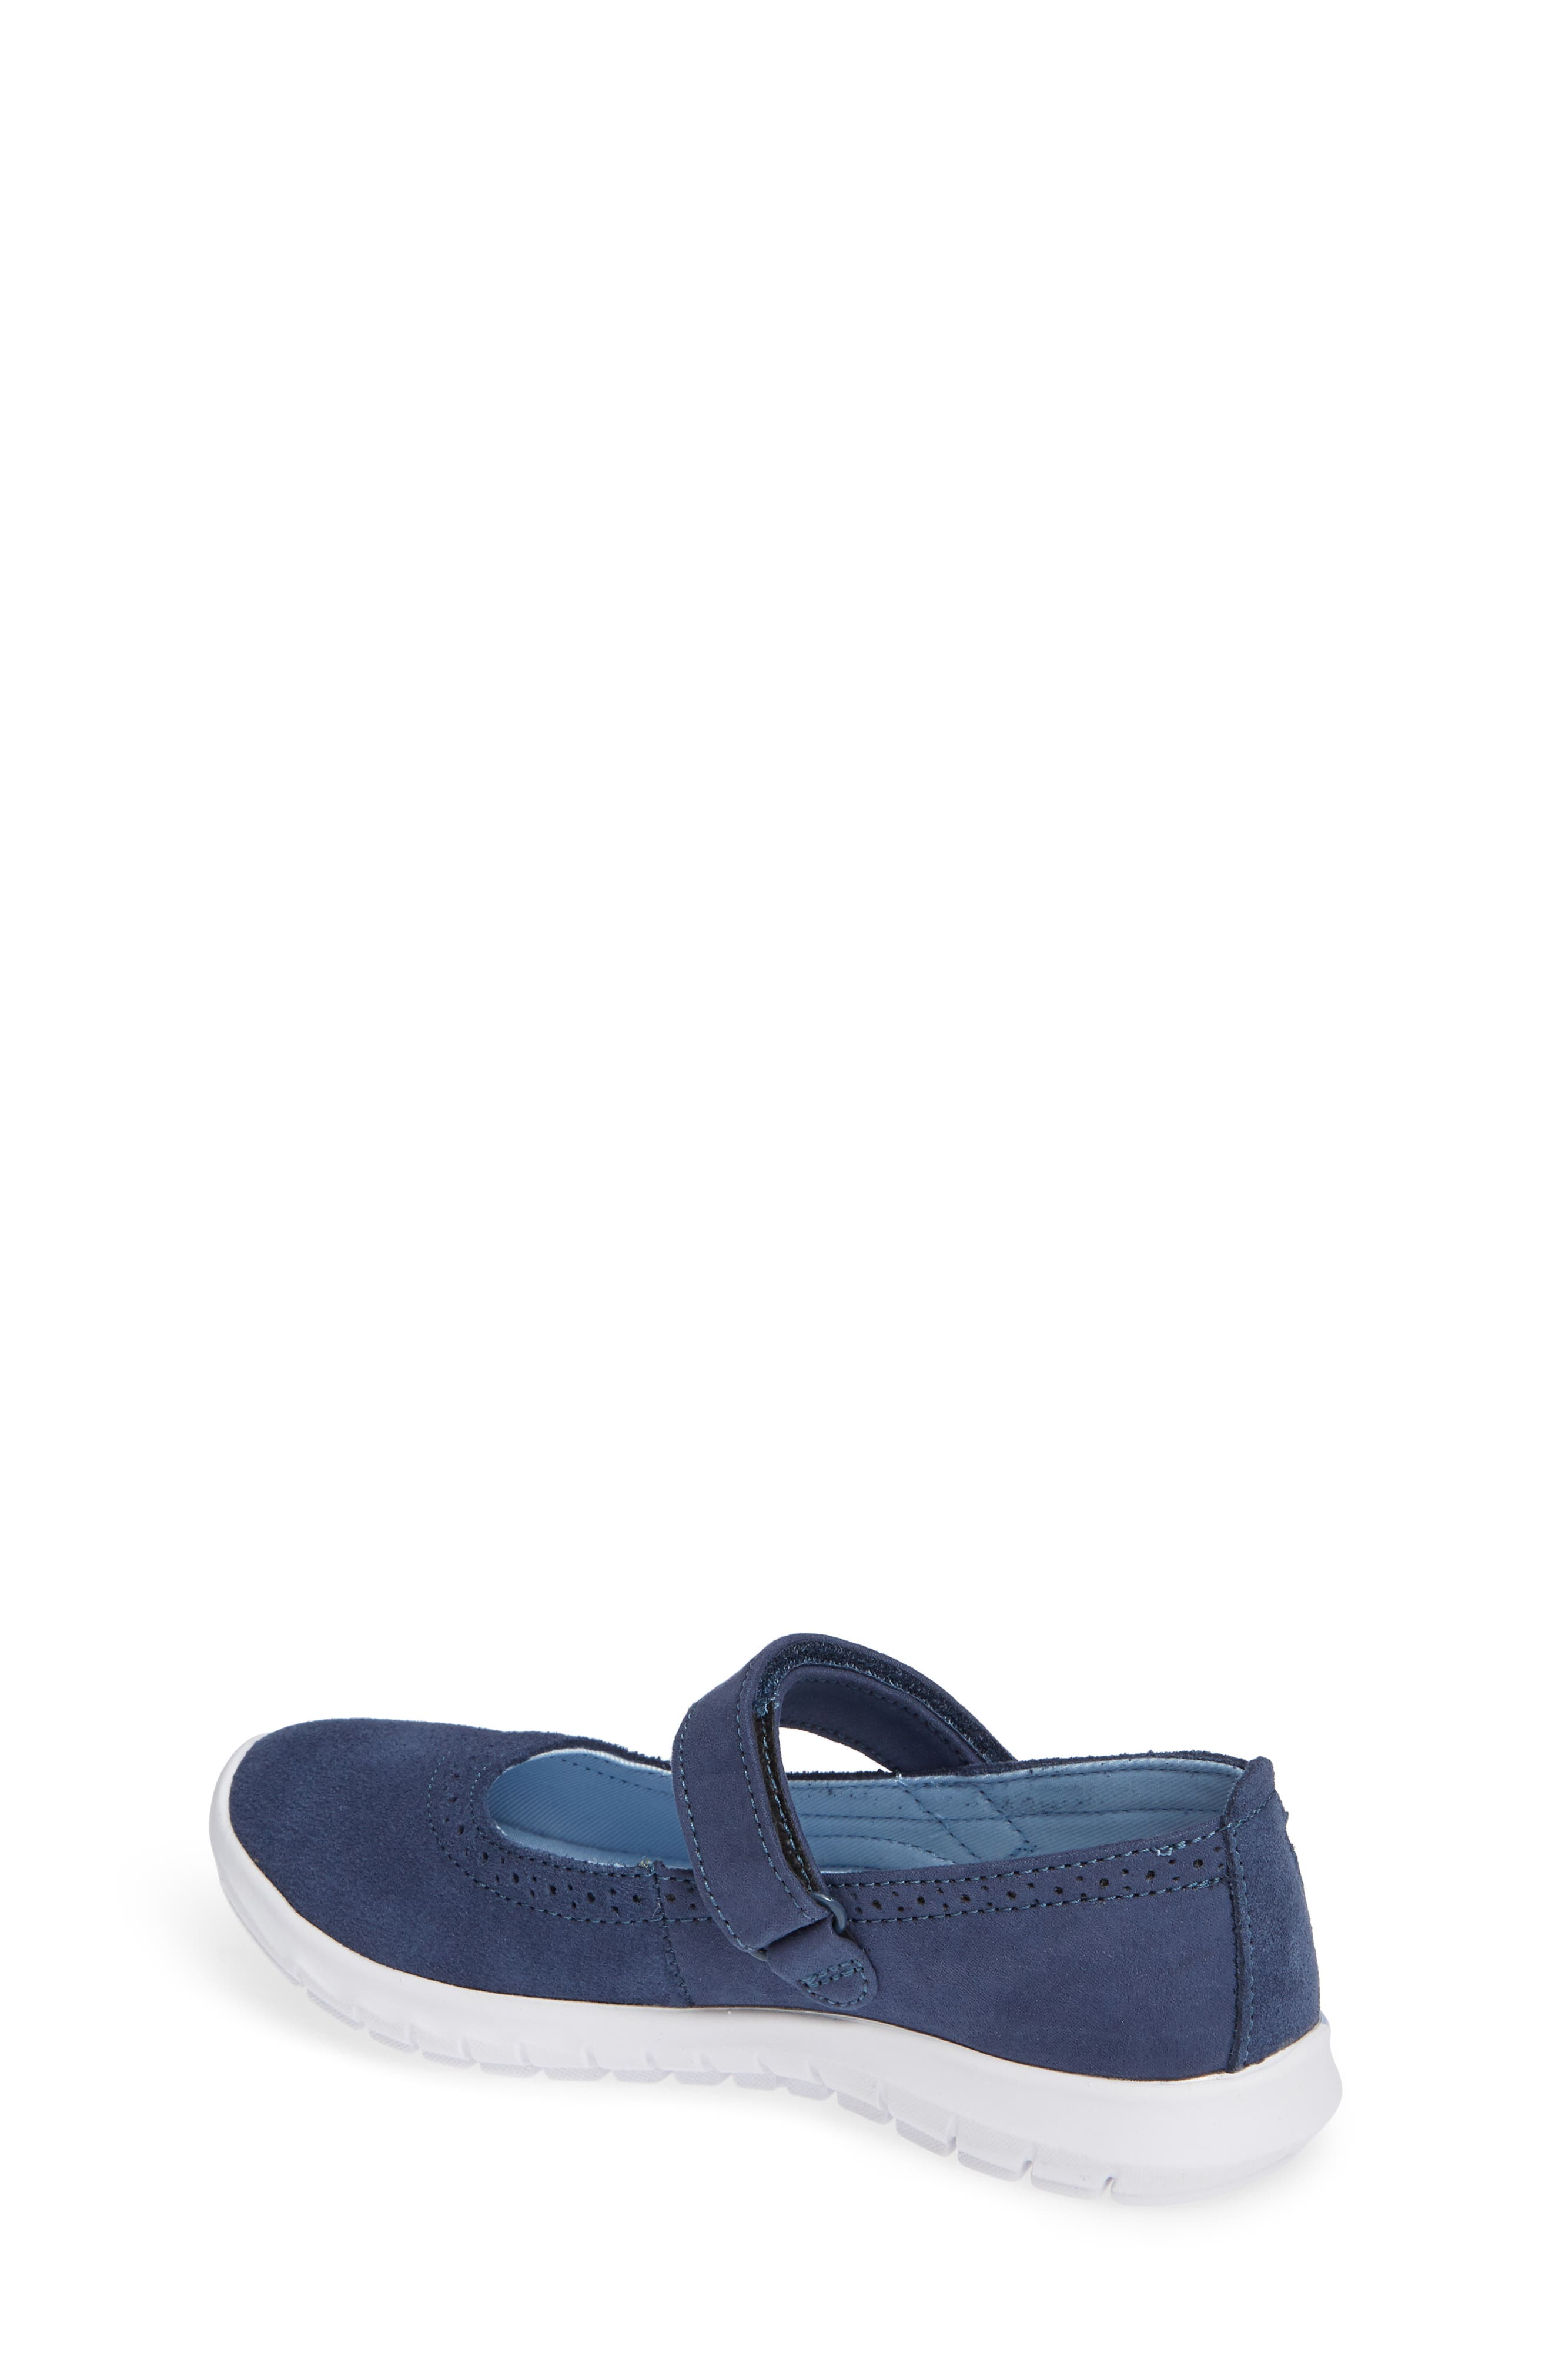 Flote Tricia Mary Jane Flat,                             Alternate thumbnail 2, color,                             NAVY